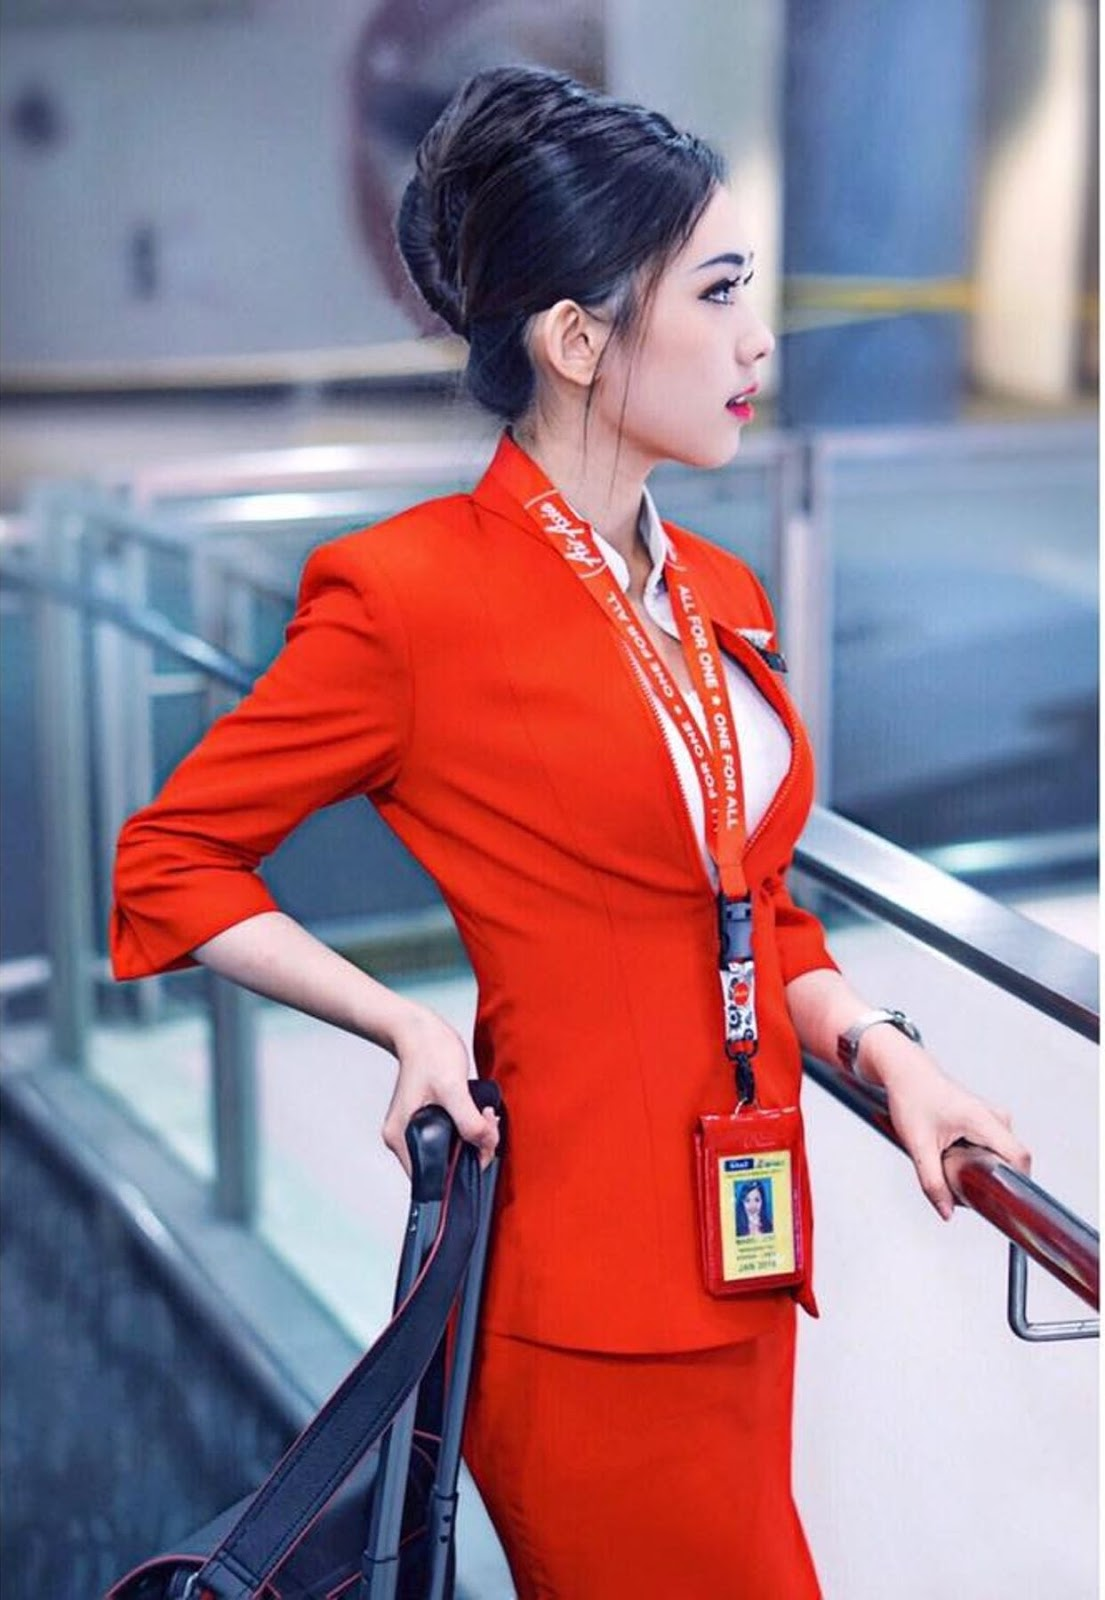 Mabel Goo has been serving in AirAsia as part of its cabin crew Fun Team for almost one-and-a-half years.